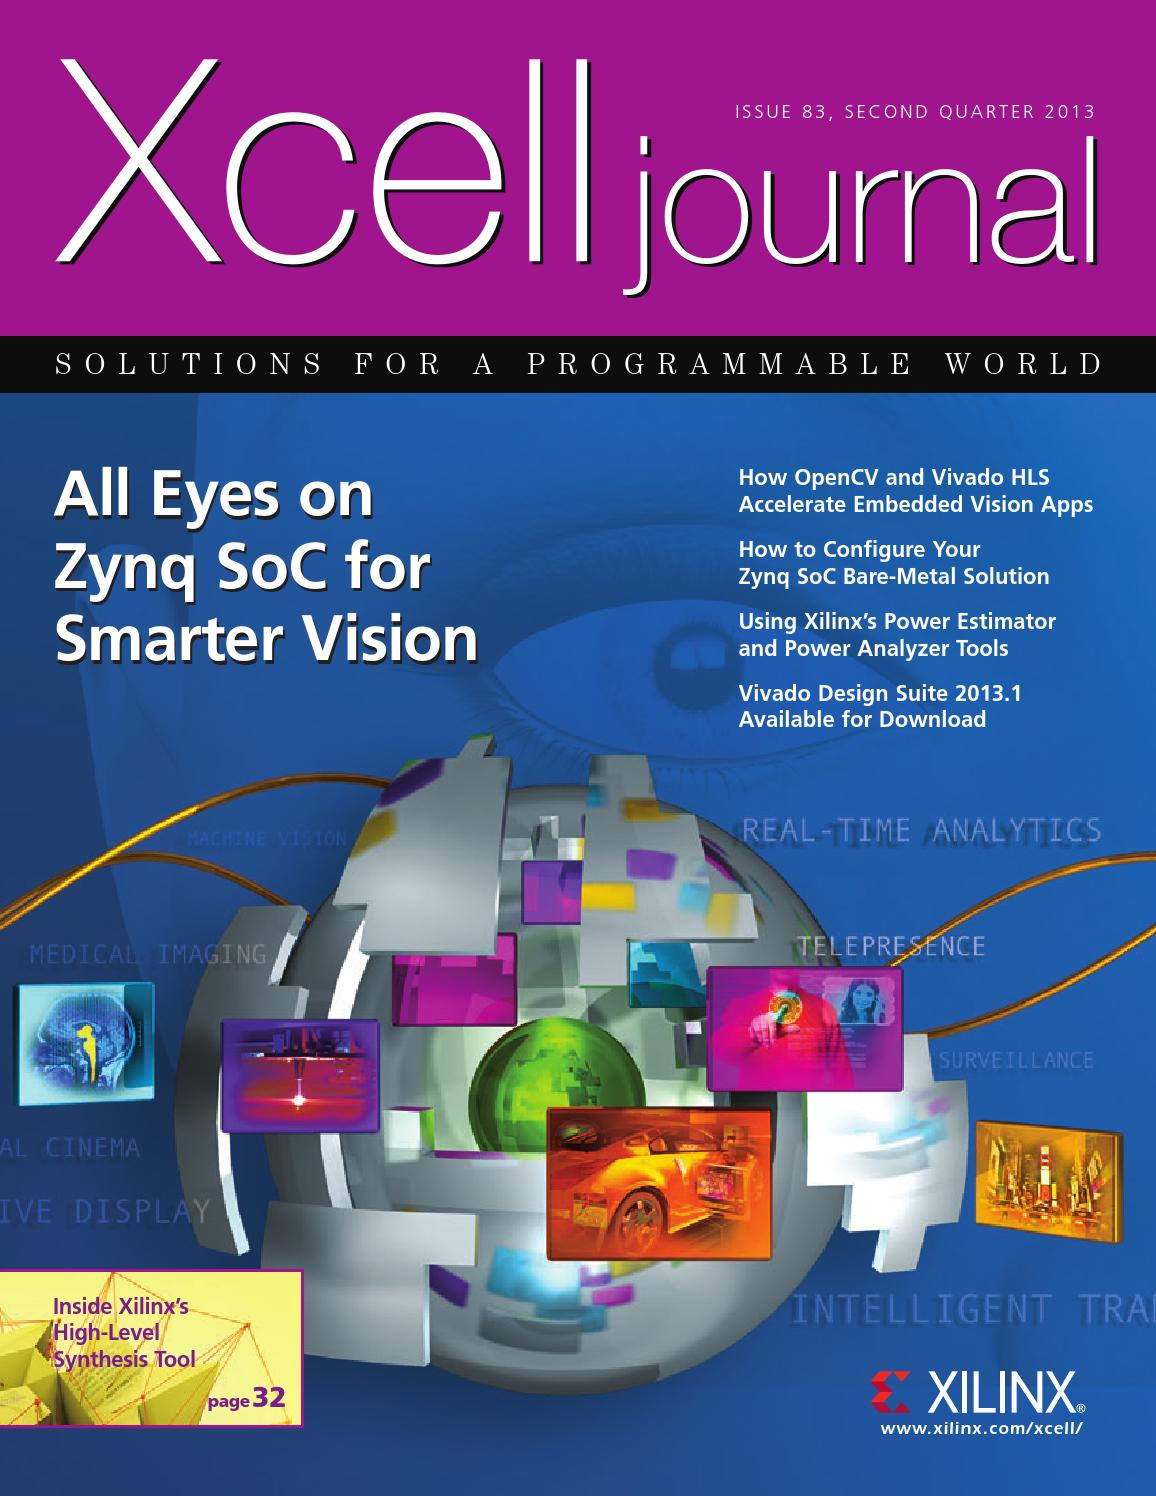 Xcell Journal issue 83 by Xilinx Xcell Publications - issuu